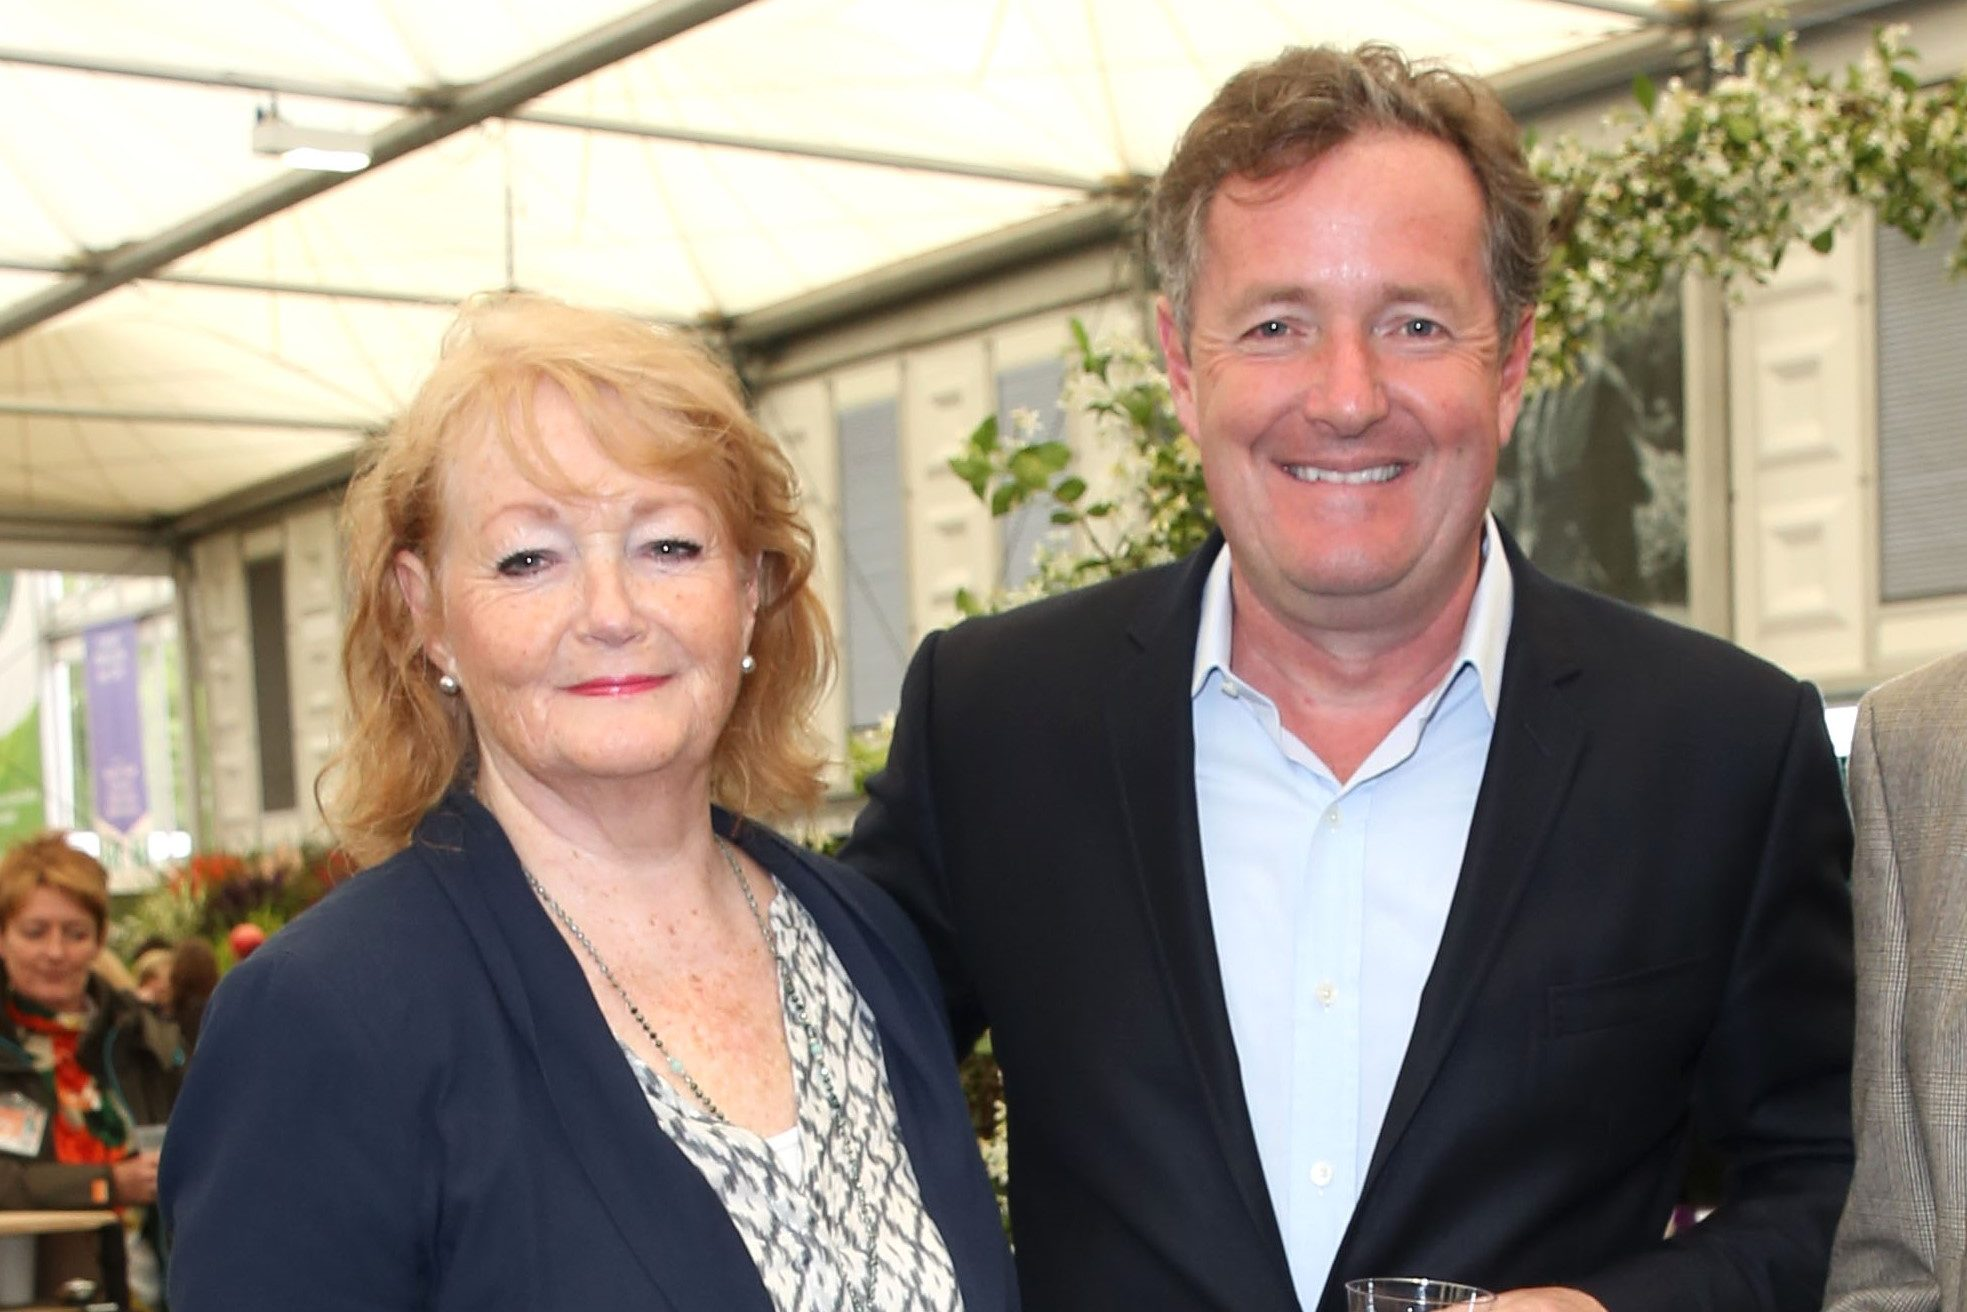 Piers Morgan's mum hits back at Lord Alan Sugar for calling him 'utter disgrace' and 'bully'